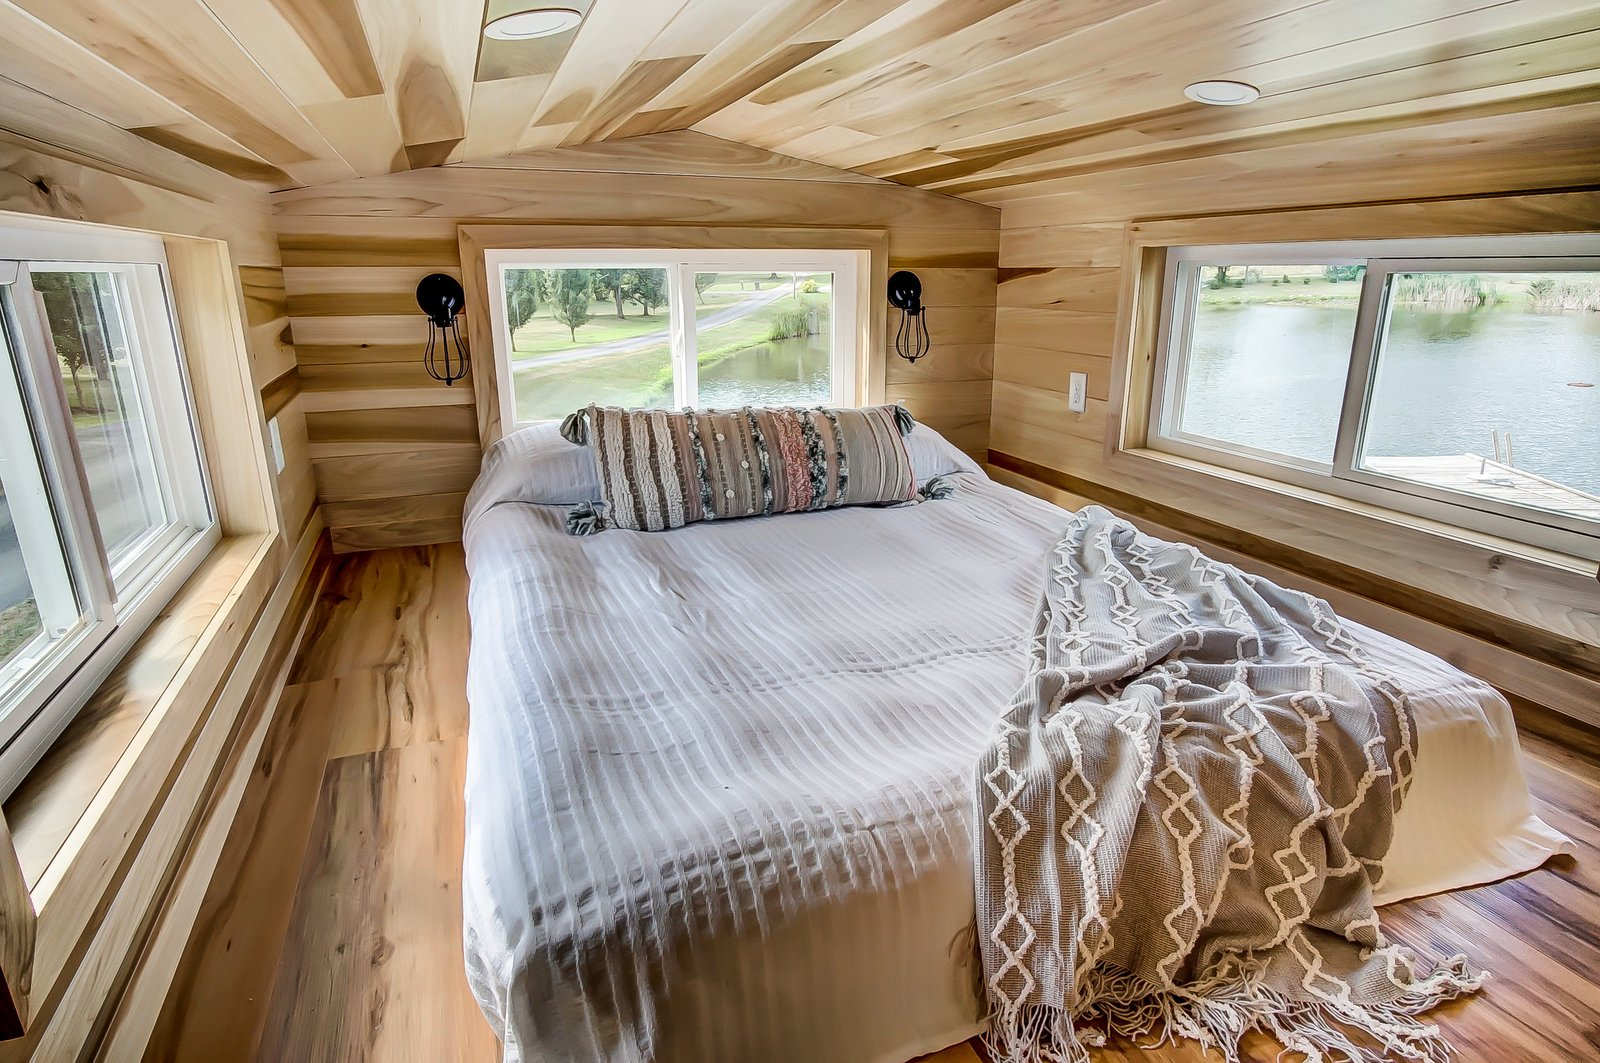 Bedroom, Bed, Medium Hardwood Floor, Wall Lighting, and Recessed Lighting Steps lead up to a sleeping loft that can accommodate two people on a double bed.    Photo 8 of 11 in This 270-Square-Foot Tiny Home Is Now Up For Grabs at $89K